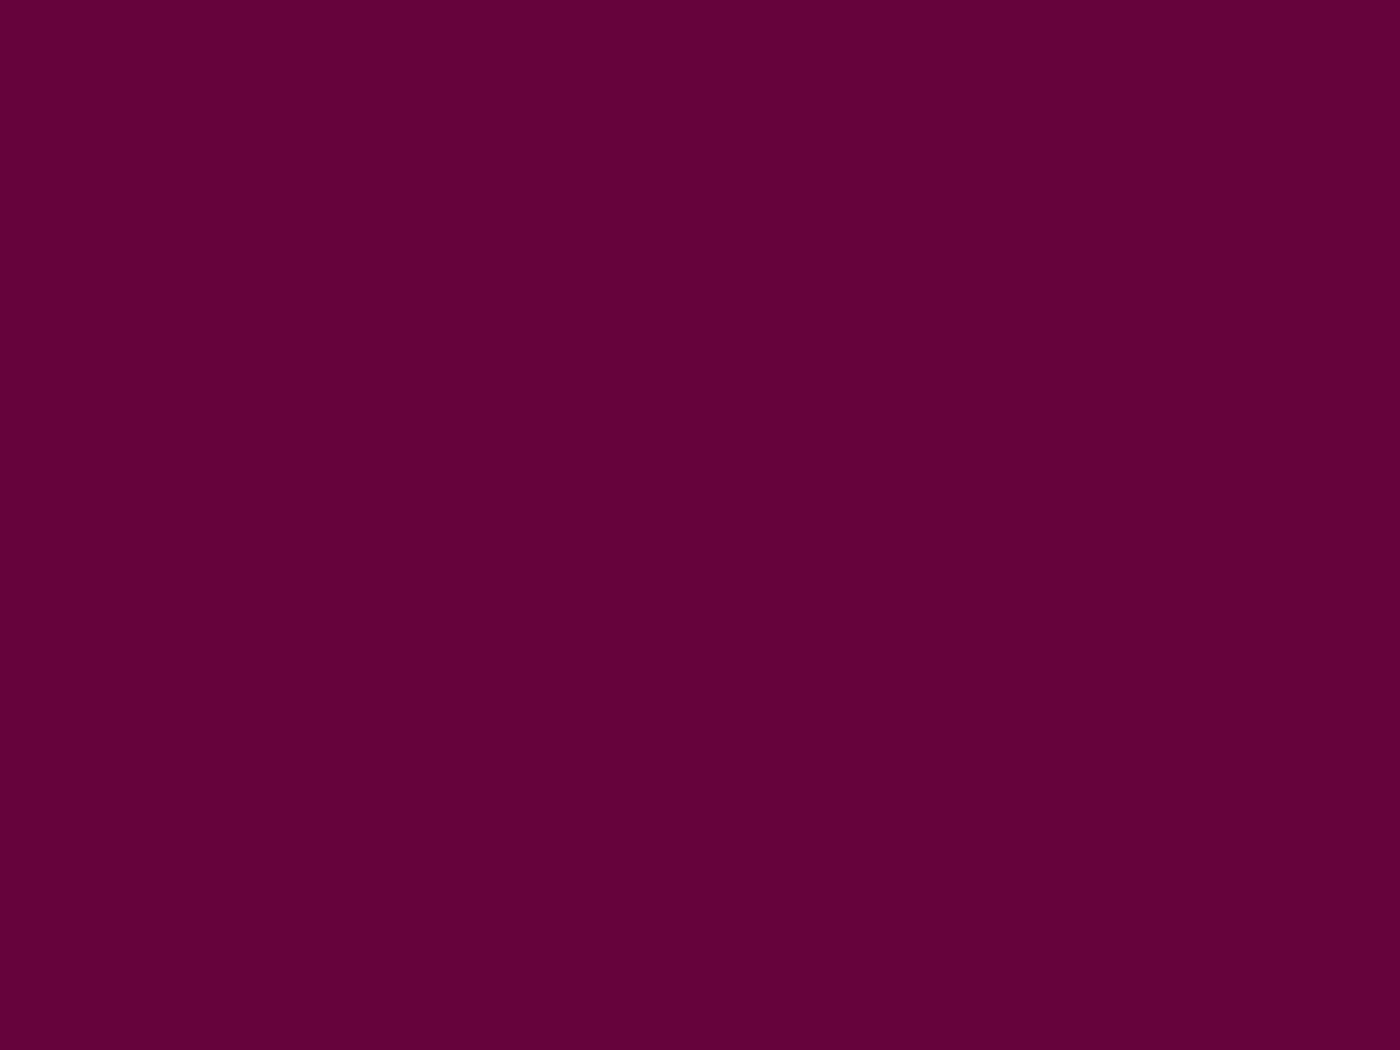 1400x1050 Tyrian Purple Solid Color Background